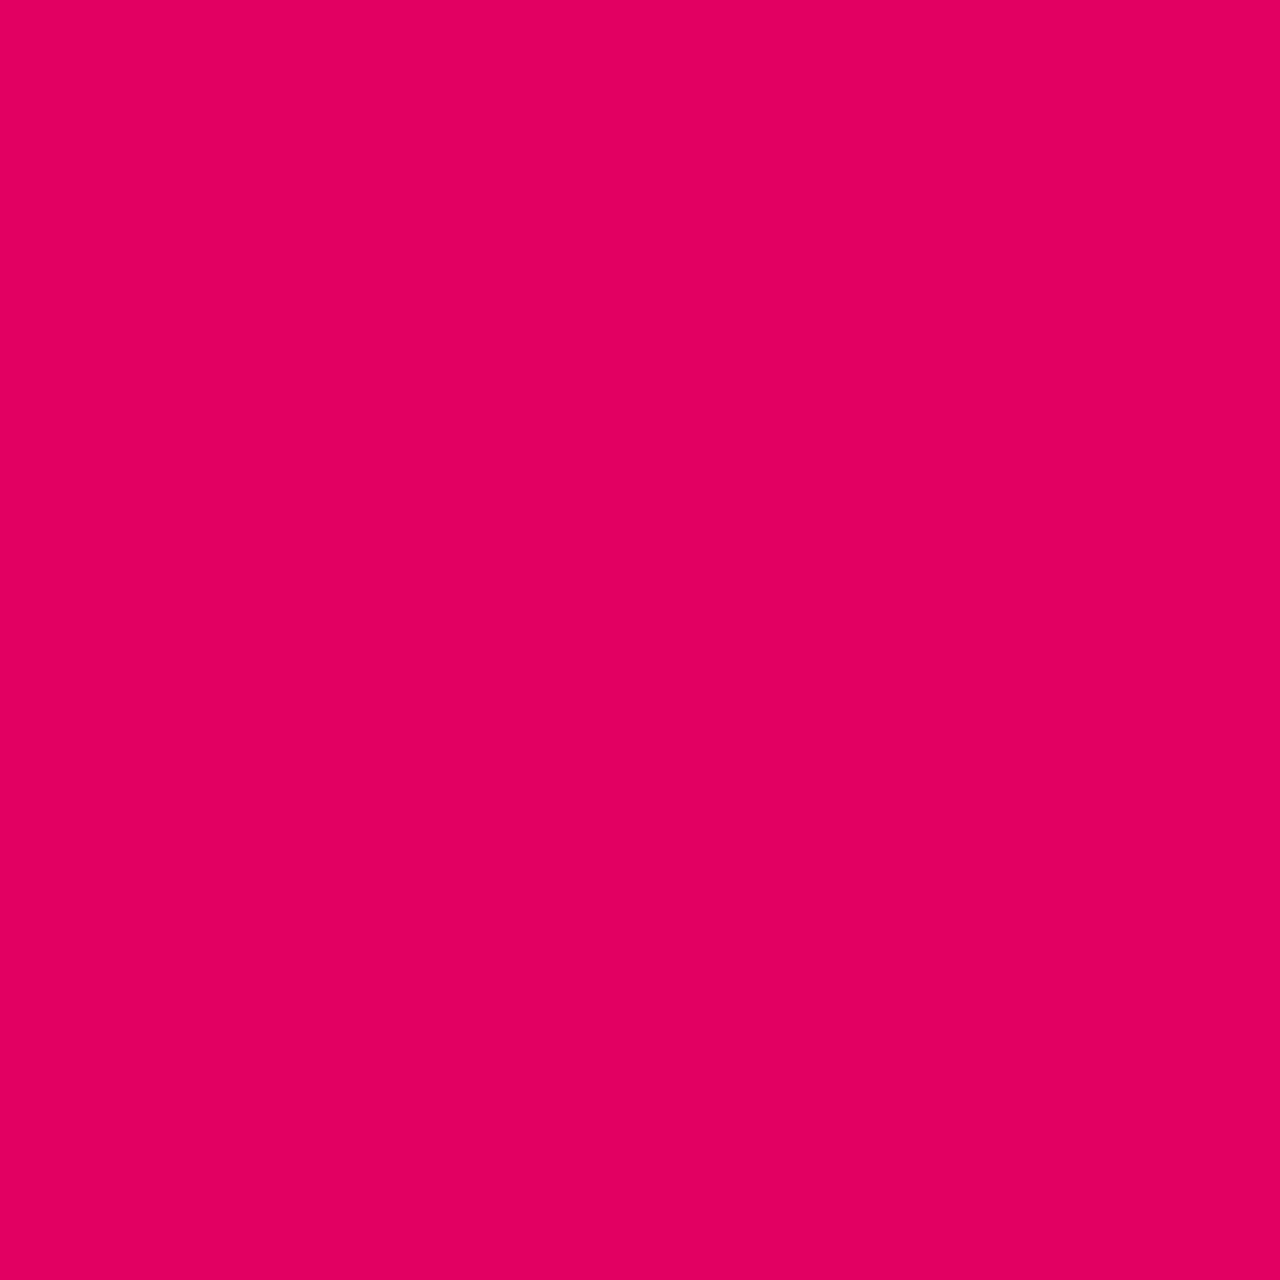 #0339 Rosco Gels Roscolux Broadway Pink, 20x24""